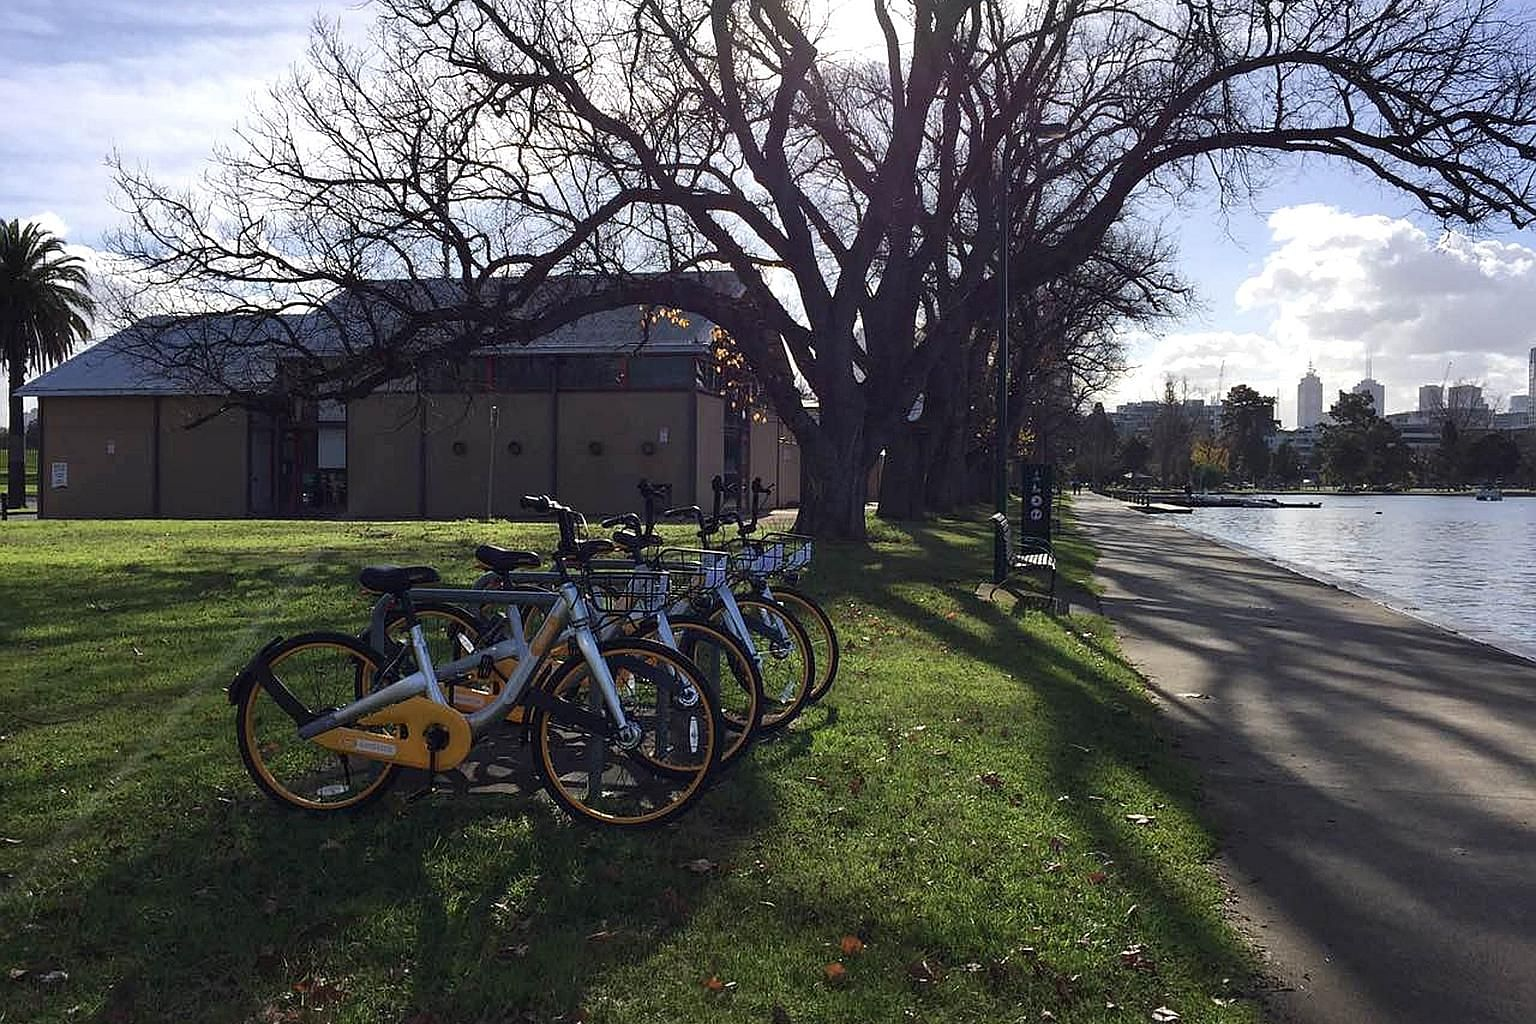 Two Australian cities have started bike-sharing schemes. Melbourne (above) has embraced Singapore's oBike, while Sydney is set to start with a scheme called Reddy Go, backed by China's Bluegogo. However, the new dockless schemes have raised concerns